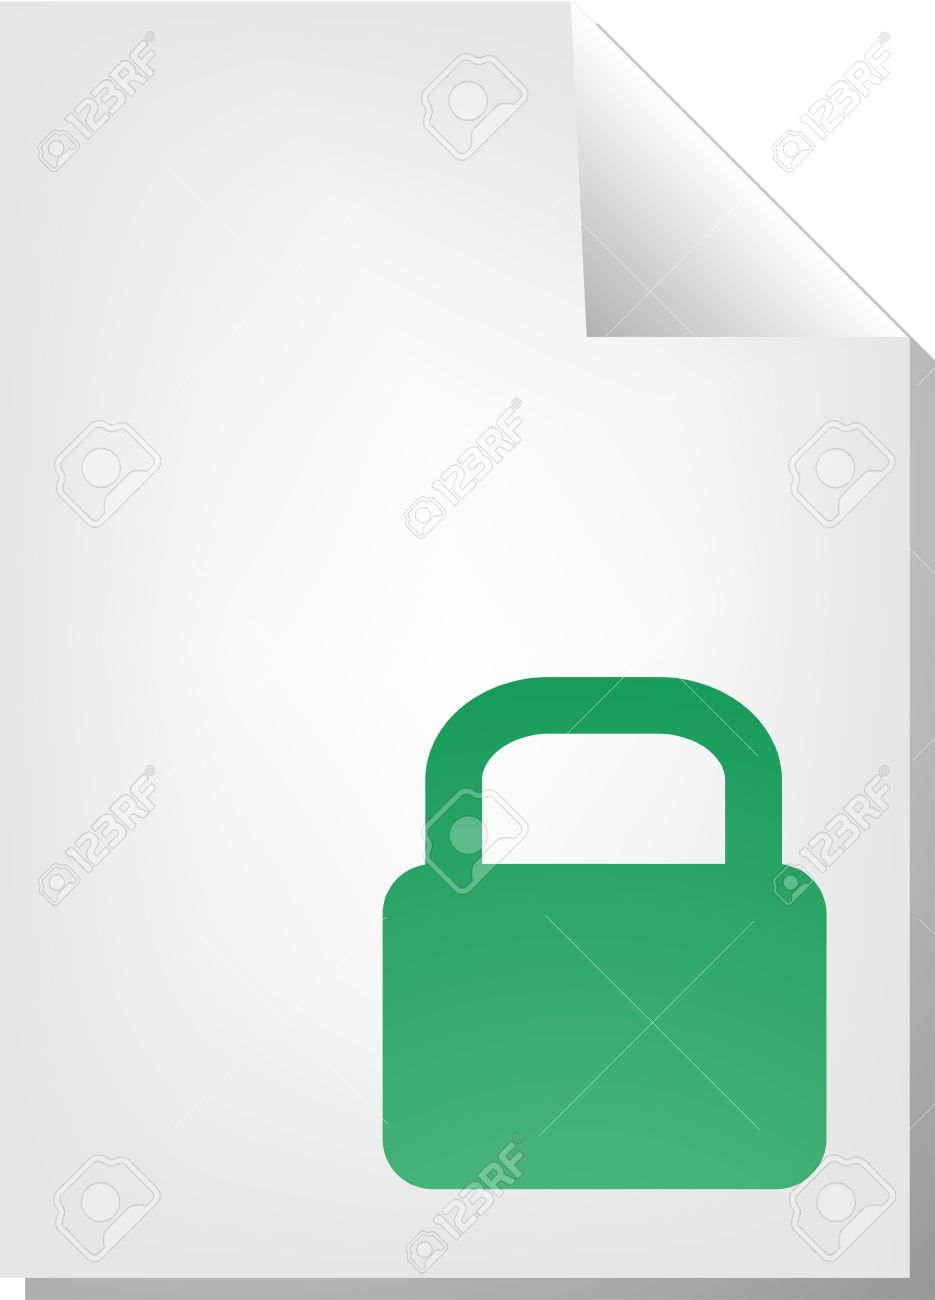 Locked Security Document File Type Illustration Clipart Stock.